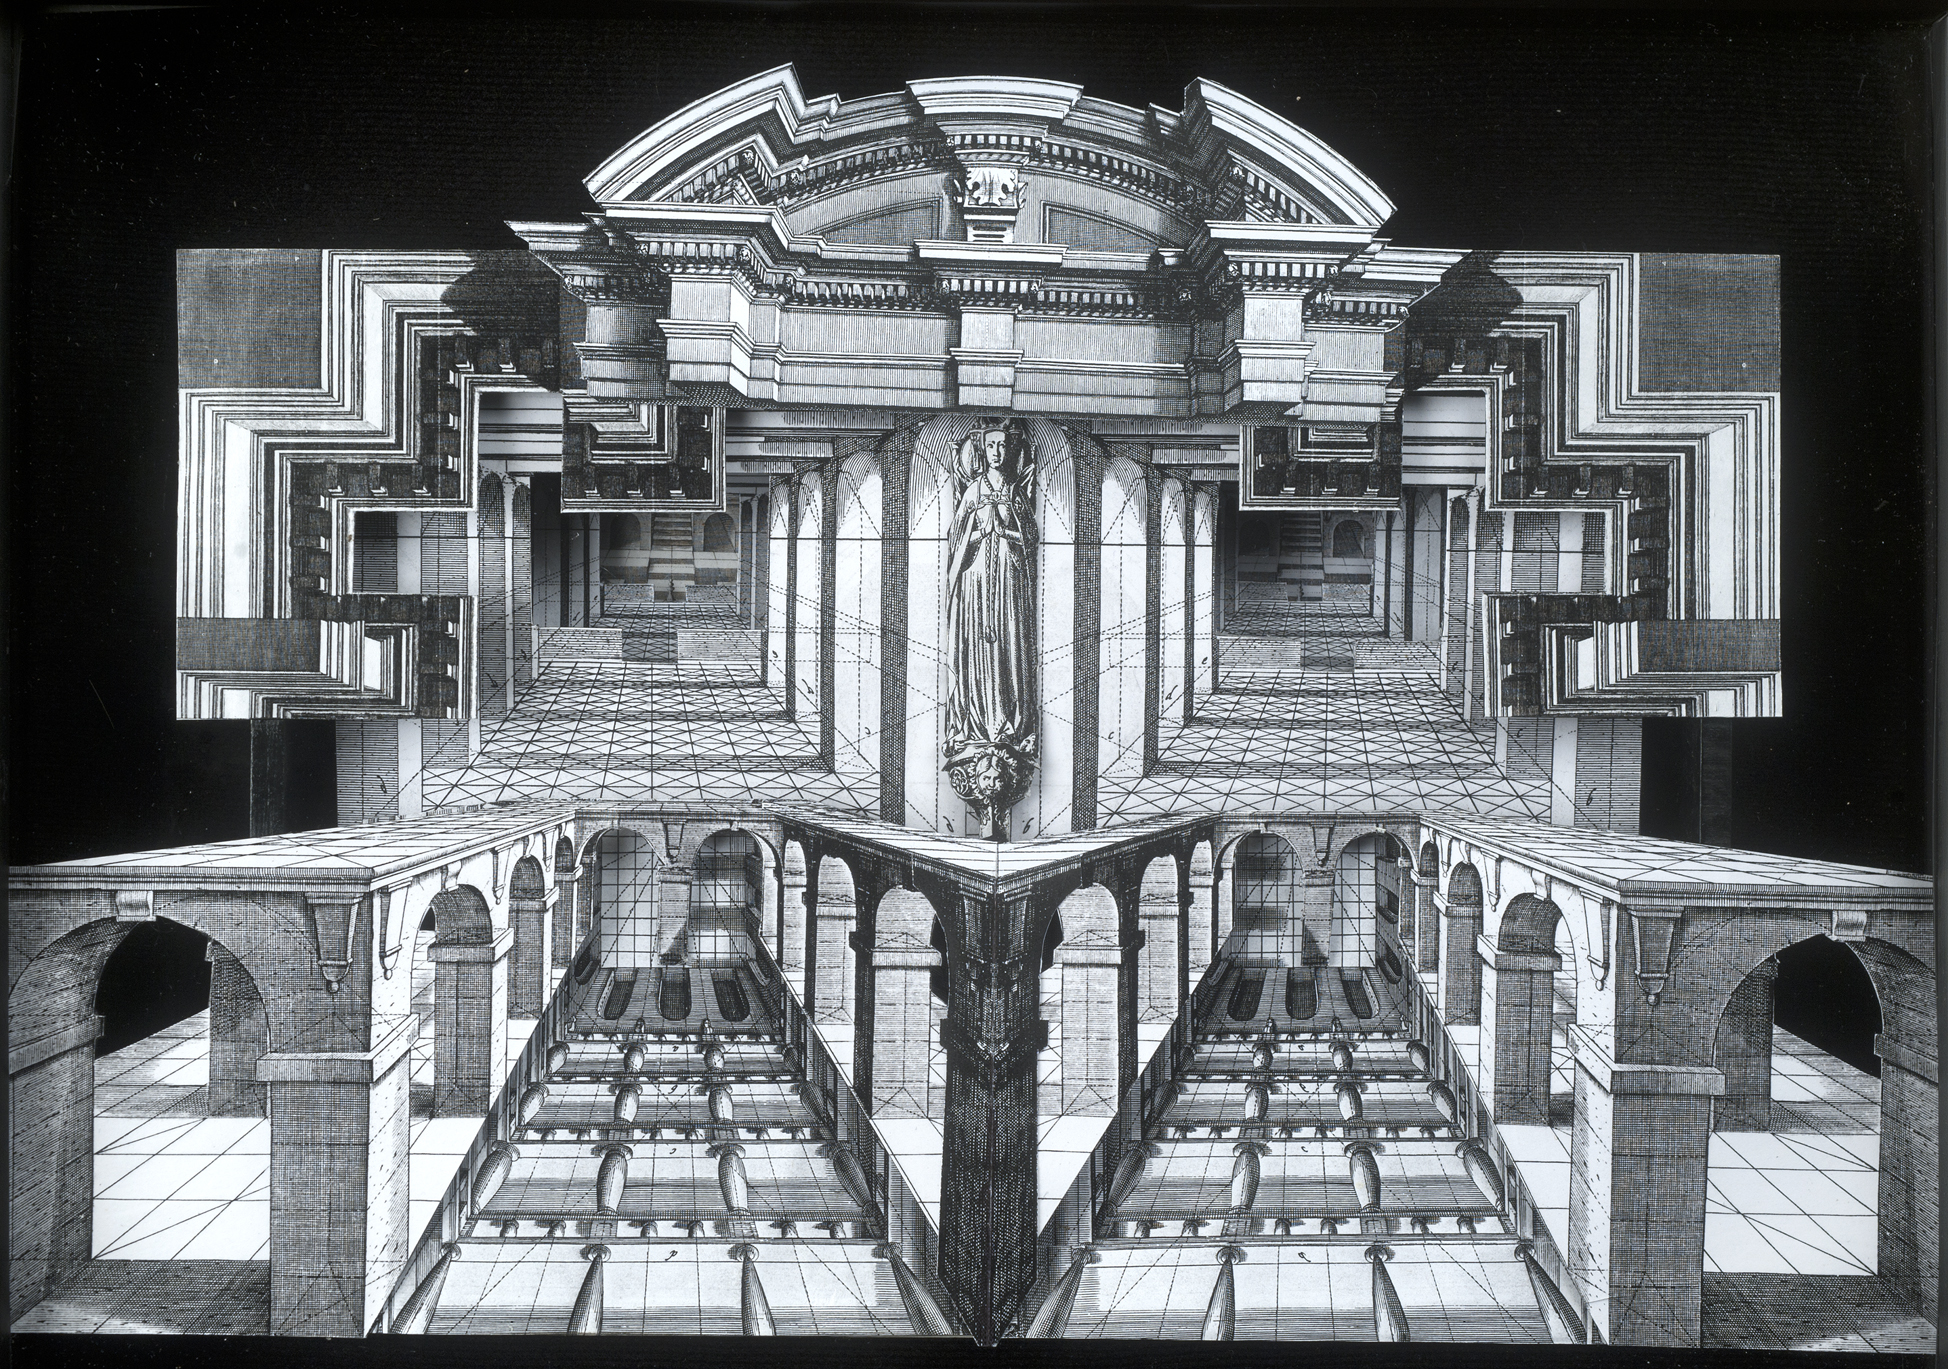 Architecture with perspective #2